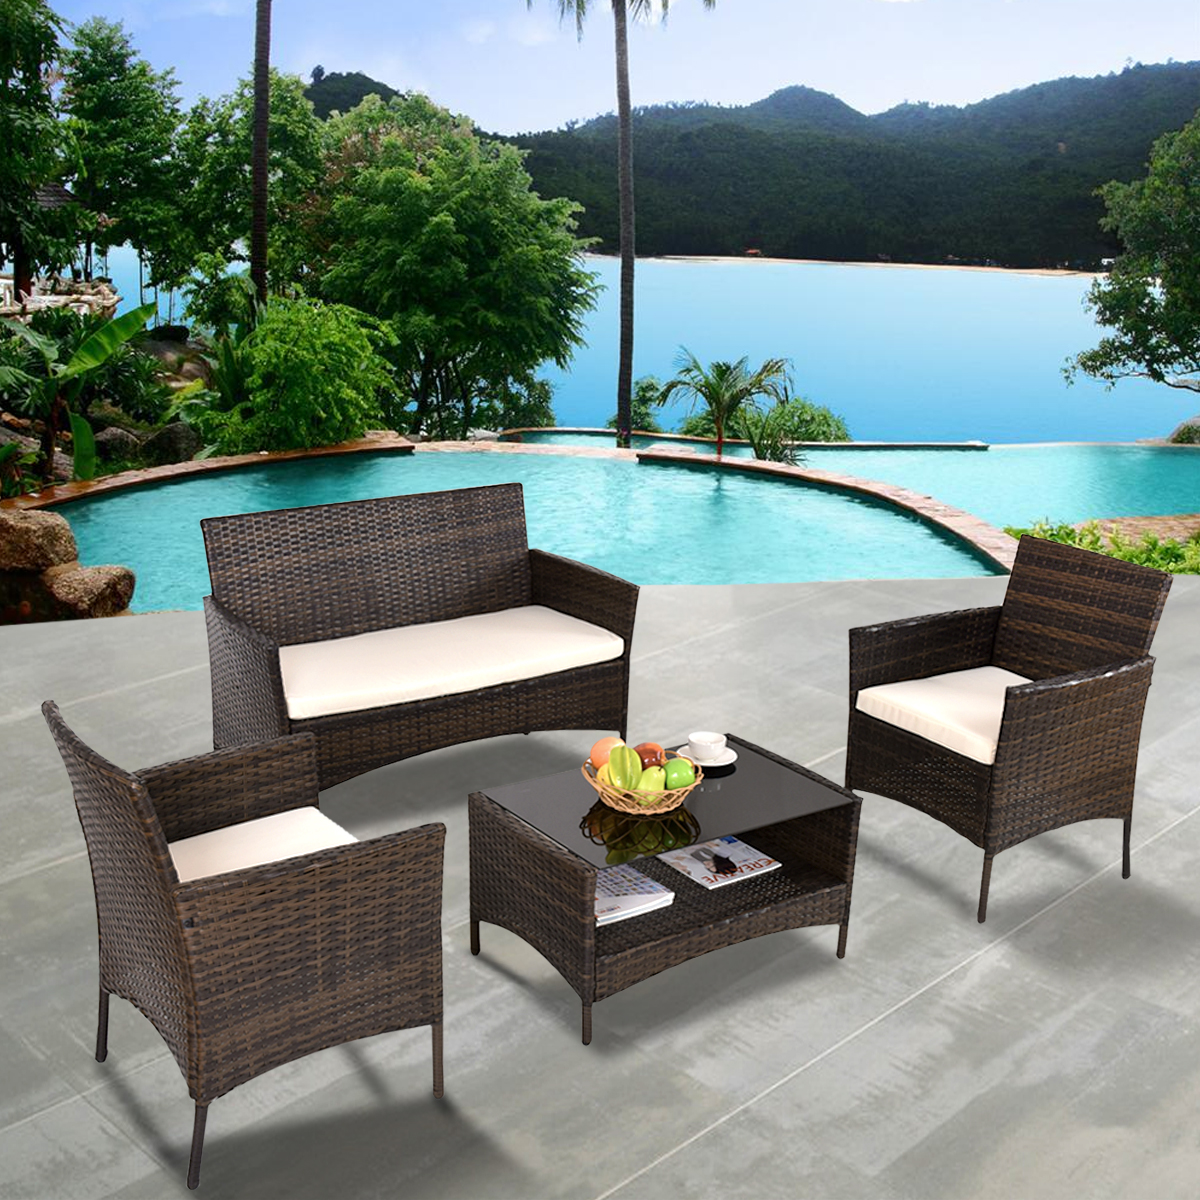 Costway 4 PCS Outdoor Patio Rattan Furniture Set Table Shelf Sofa W  Beige Cushions by Costway